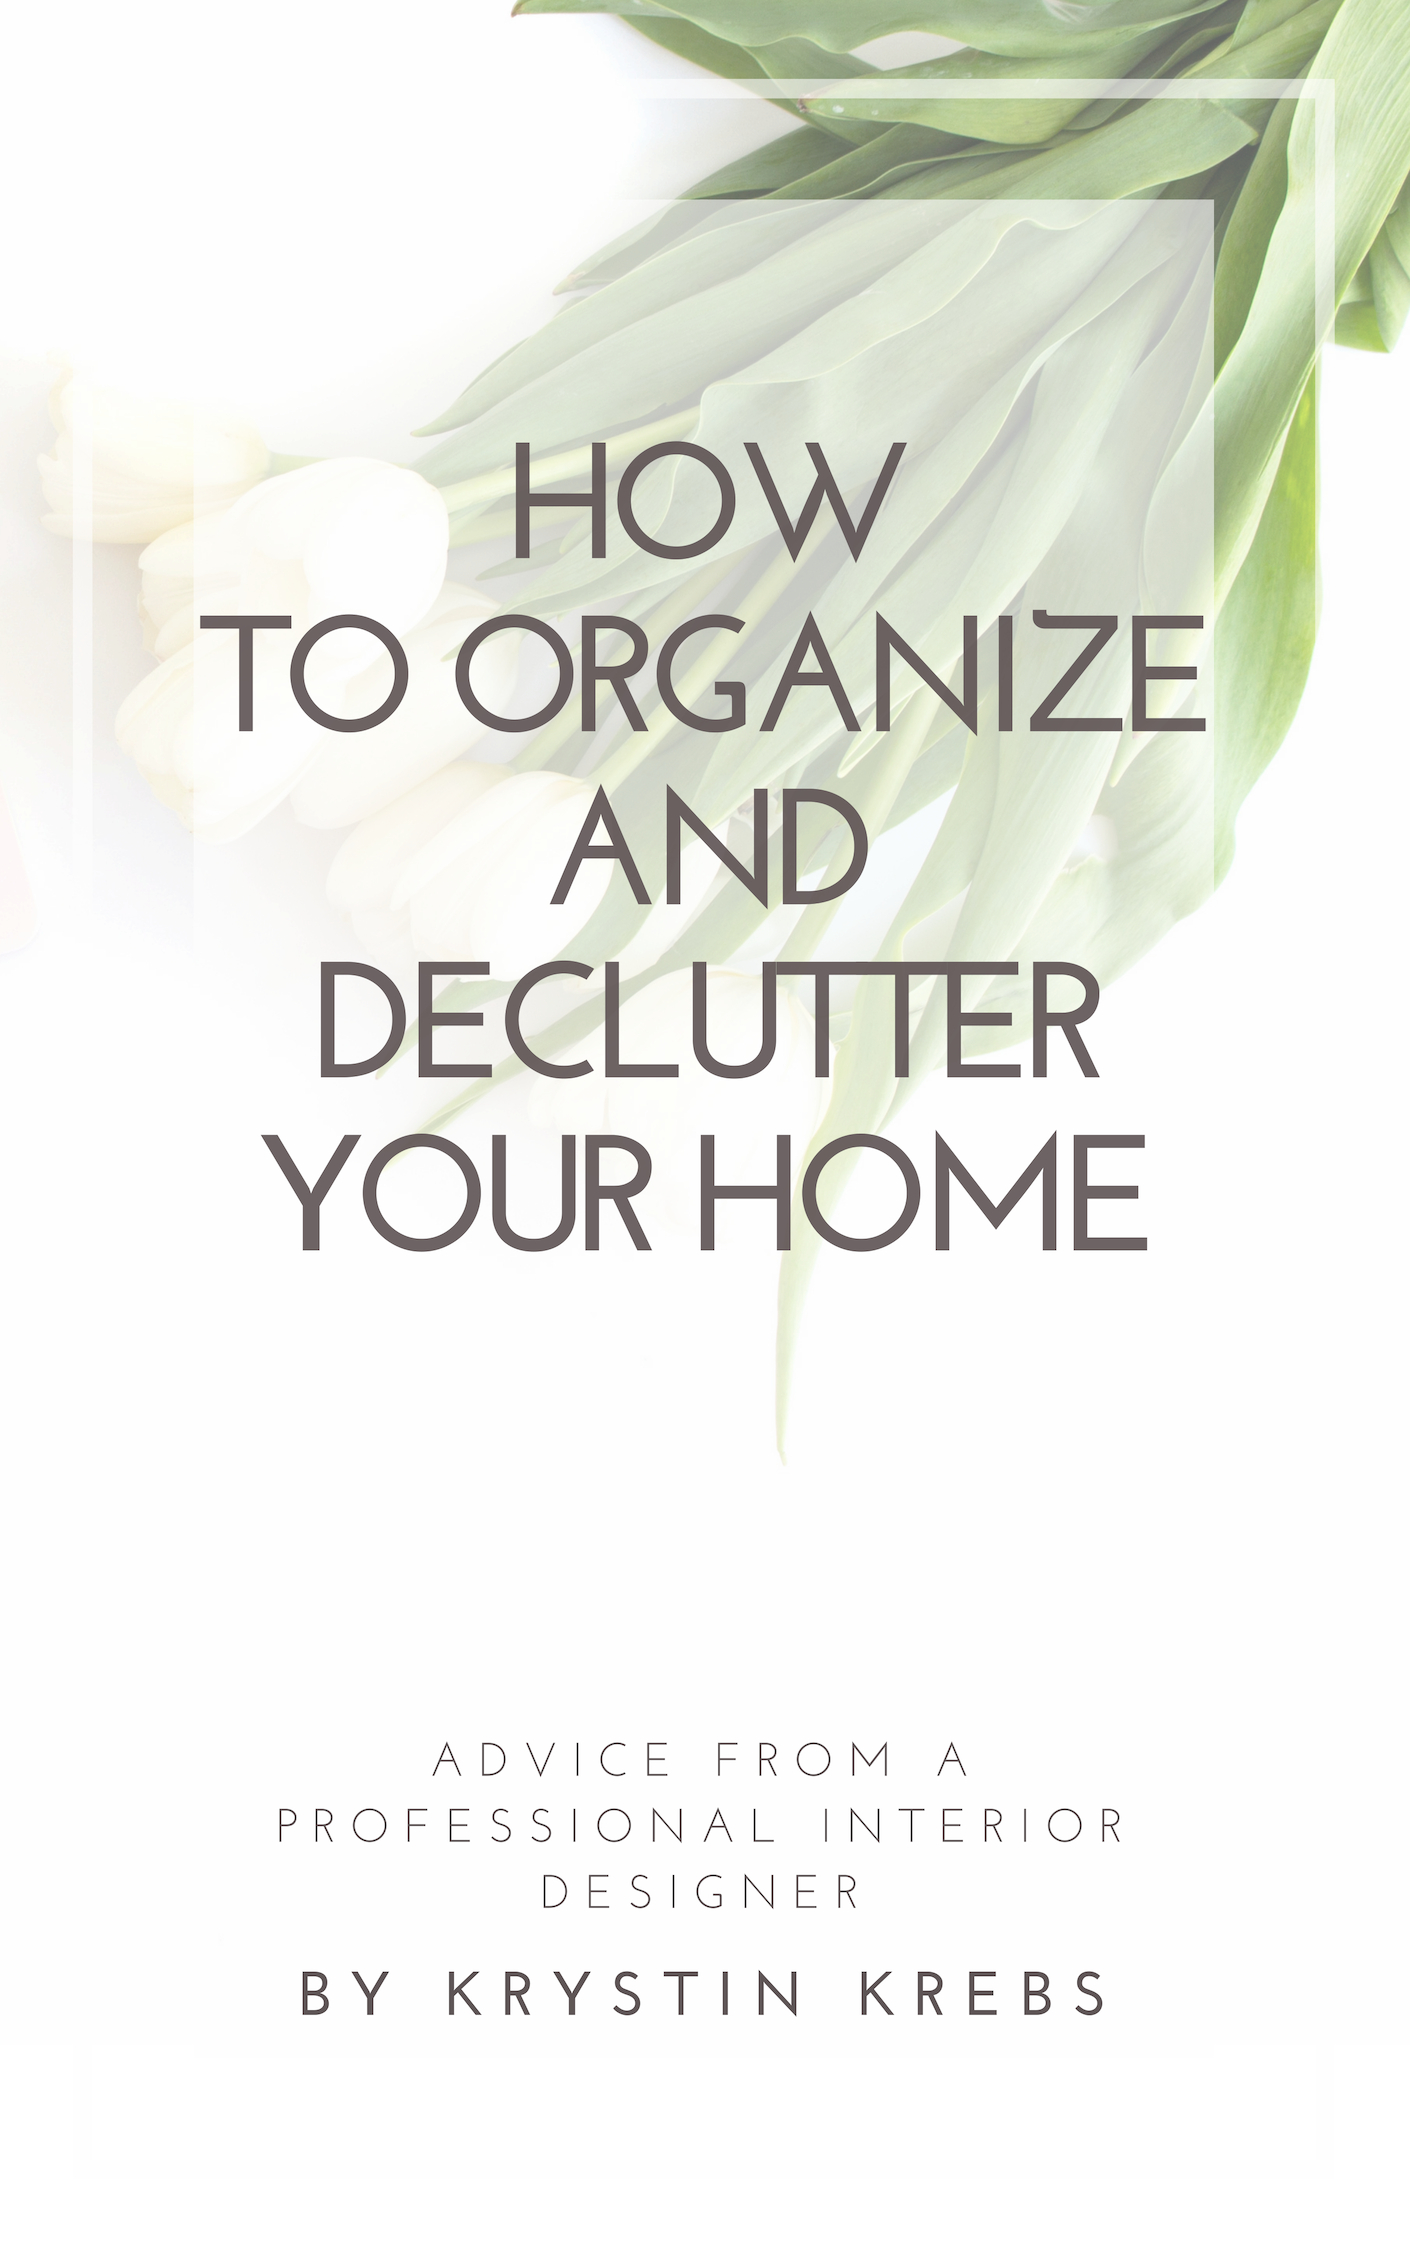 How To Organize and Declutter Your Home.jpg